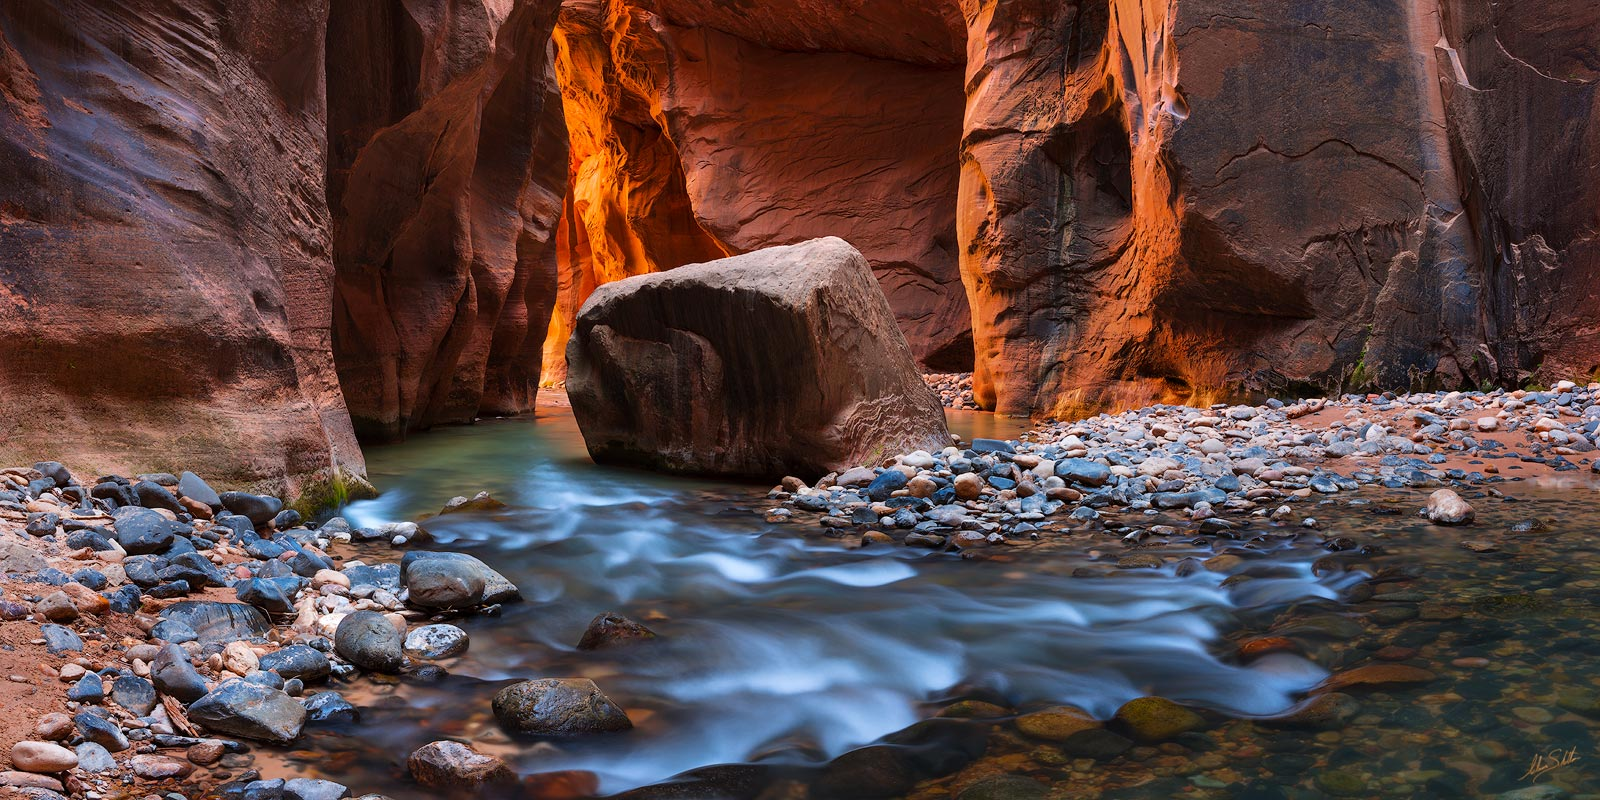 American West, Colorado Plateau, Imlay Boulder, Southwest, Utah, Virgin River, Virgin River Narrows, Zion, Zion National Park, photo